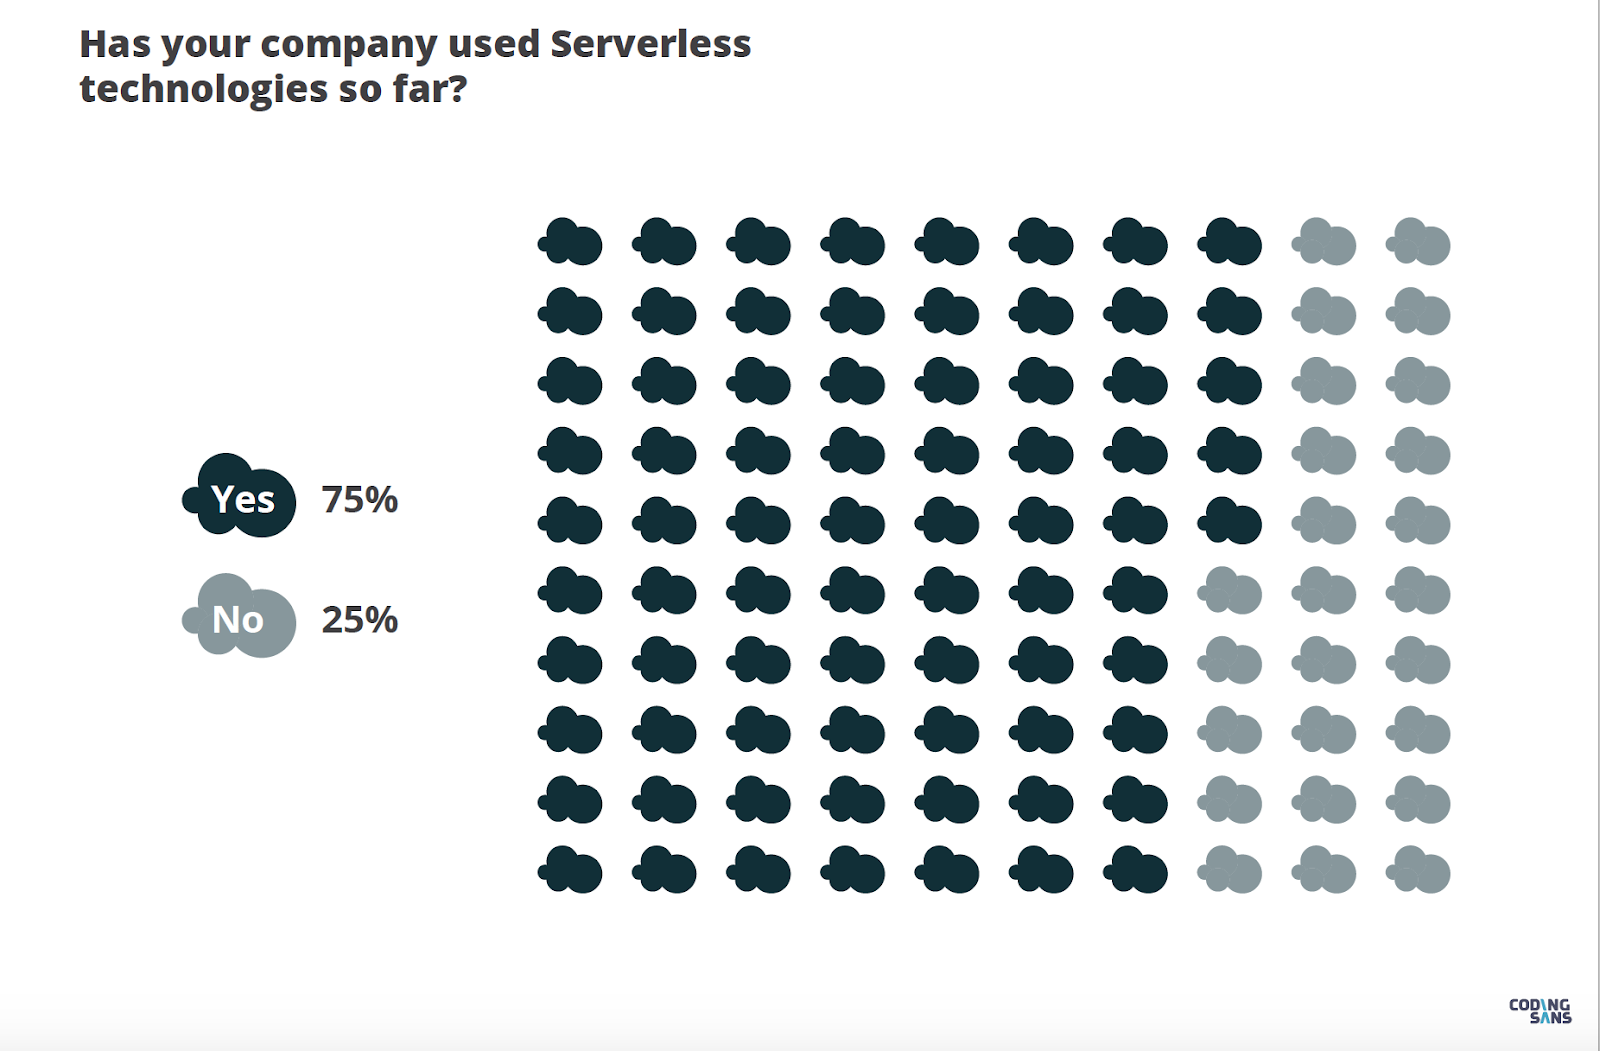 Source: State of Serverless report, Coding Sans, 2020 ALT TAG: 75% of orgs use serverless